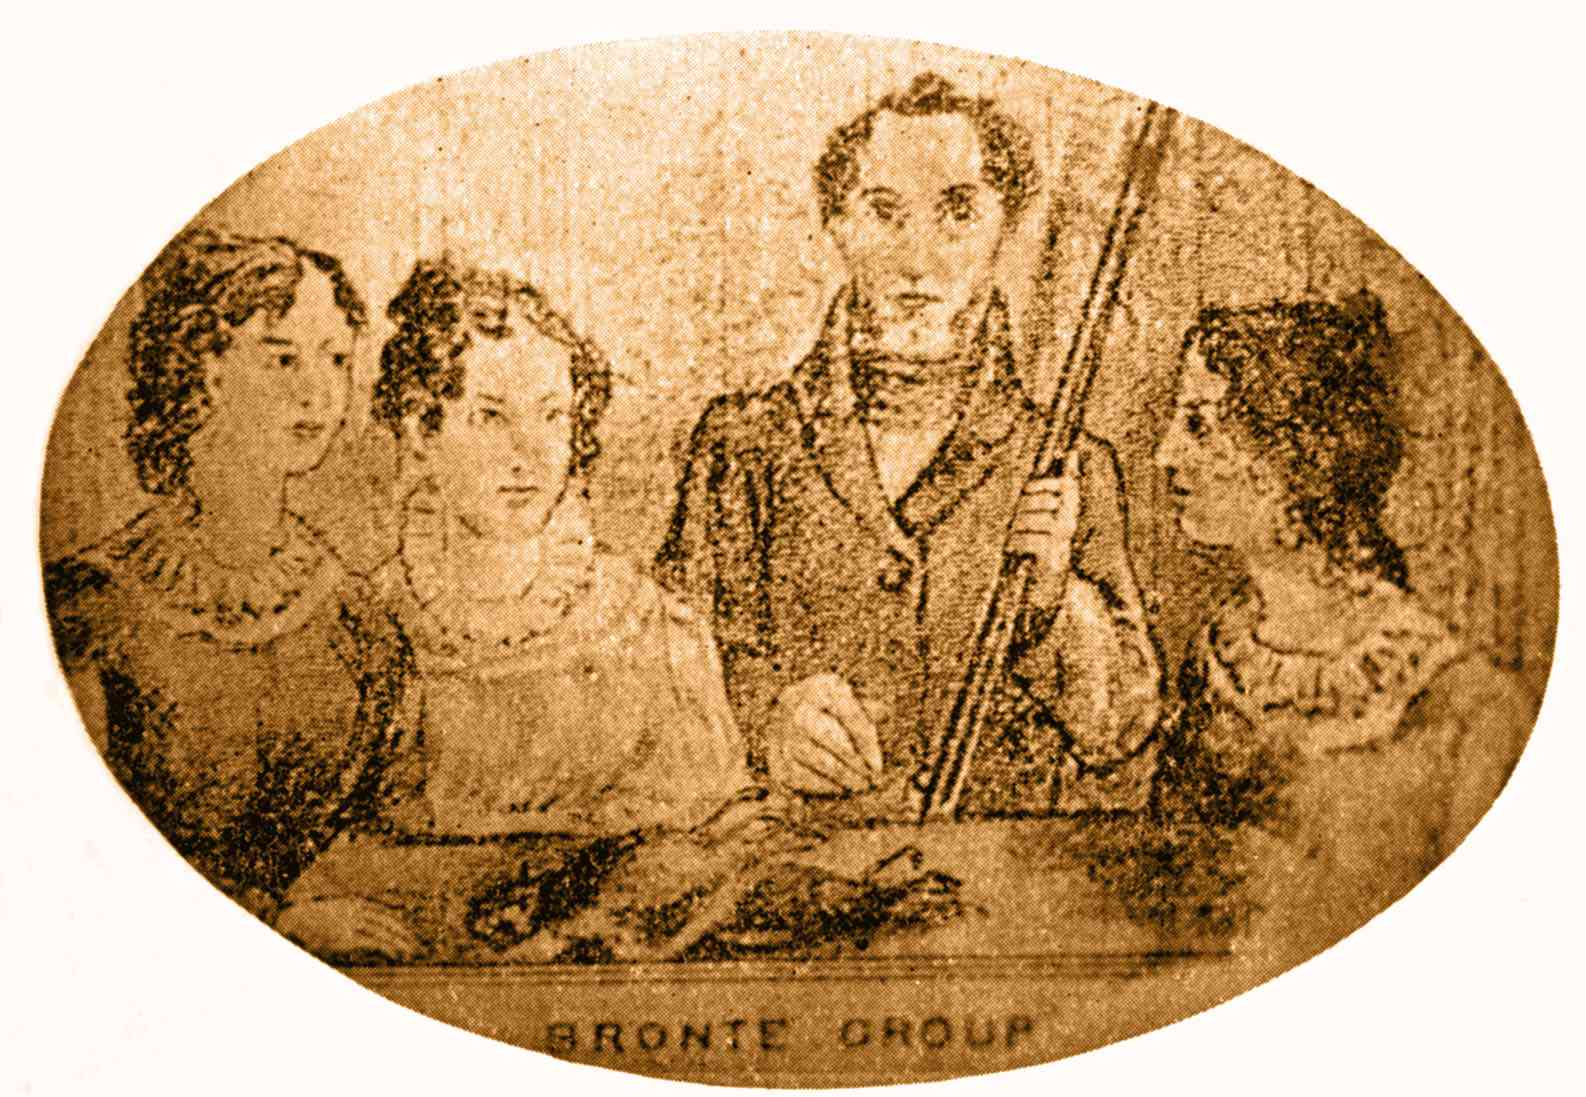 Illustration of the four Bronte siblings